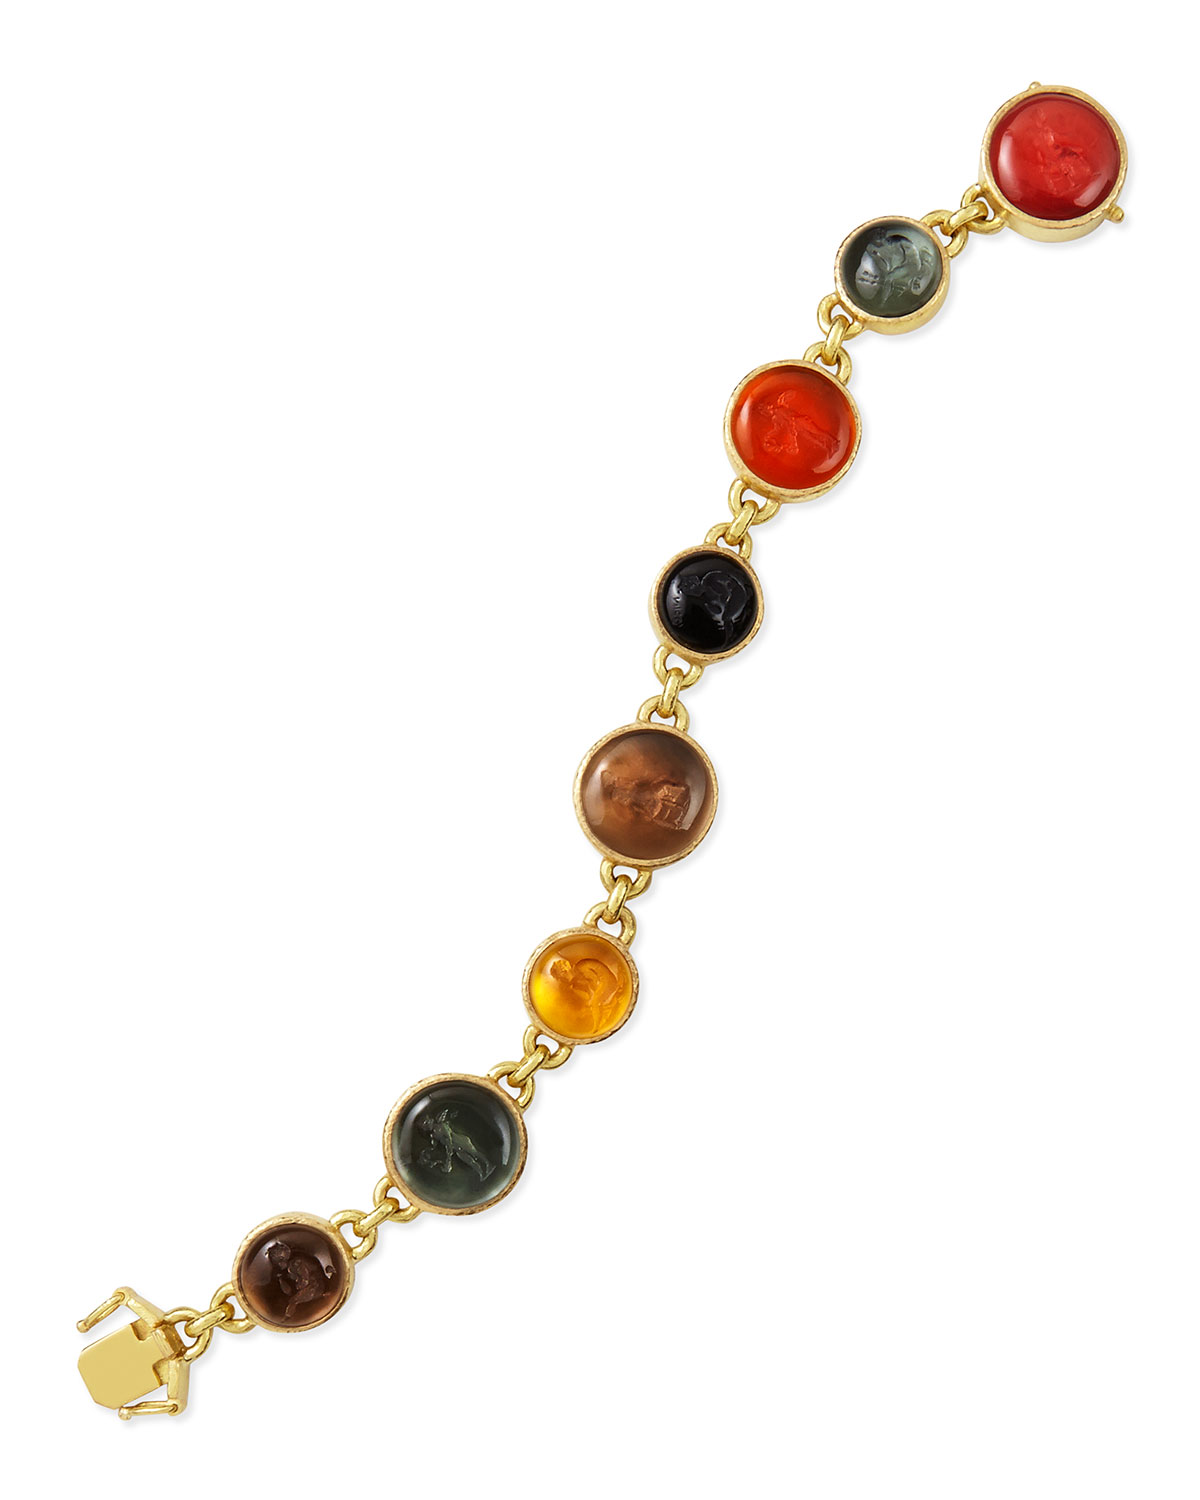 ELIZABETH LOCKE VENETIAN GLASS INTAGLIO TENNIS BRACELET, NEUTRAL